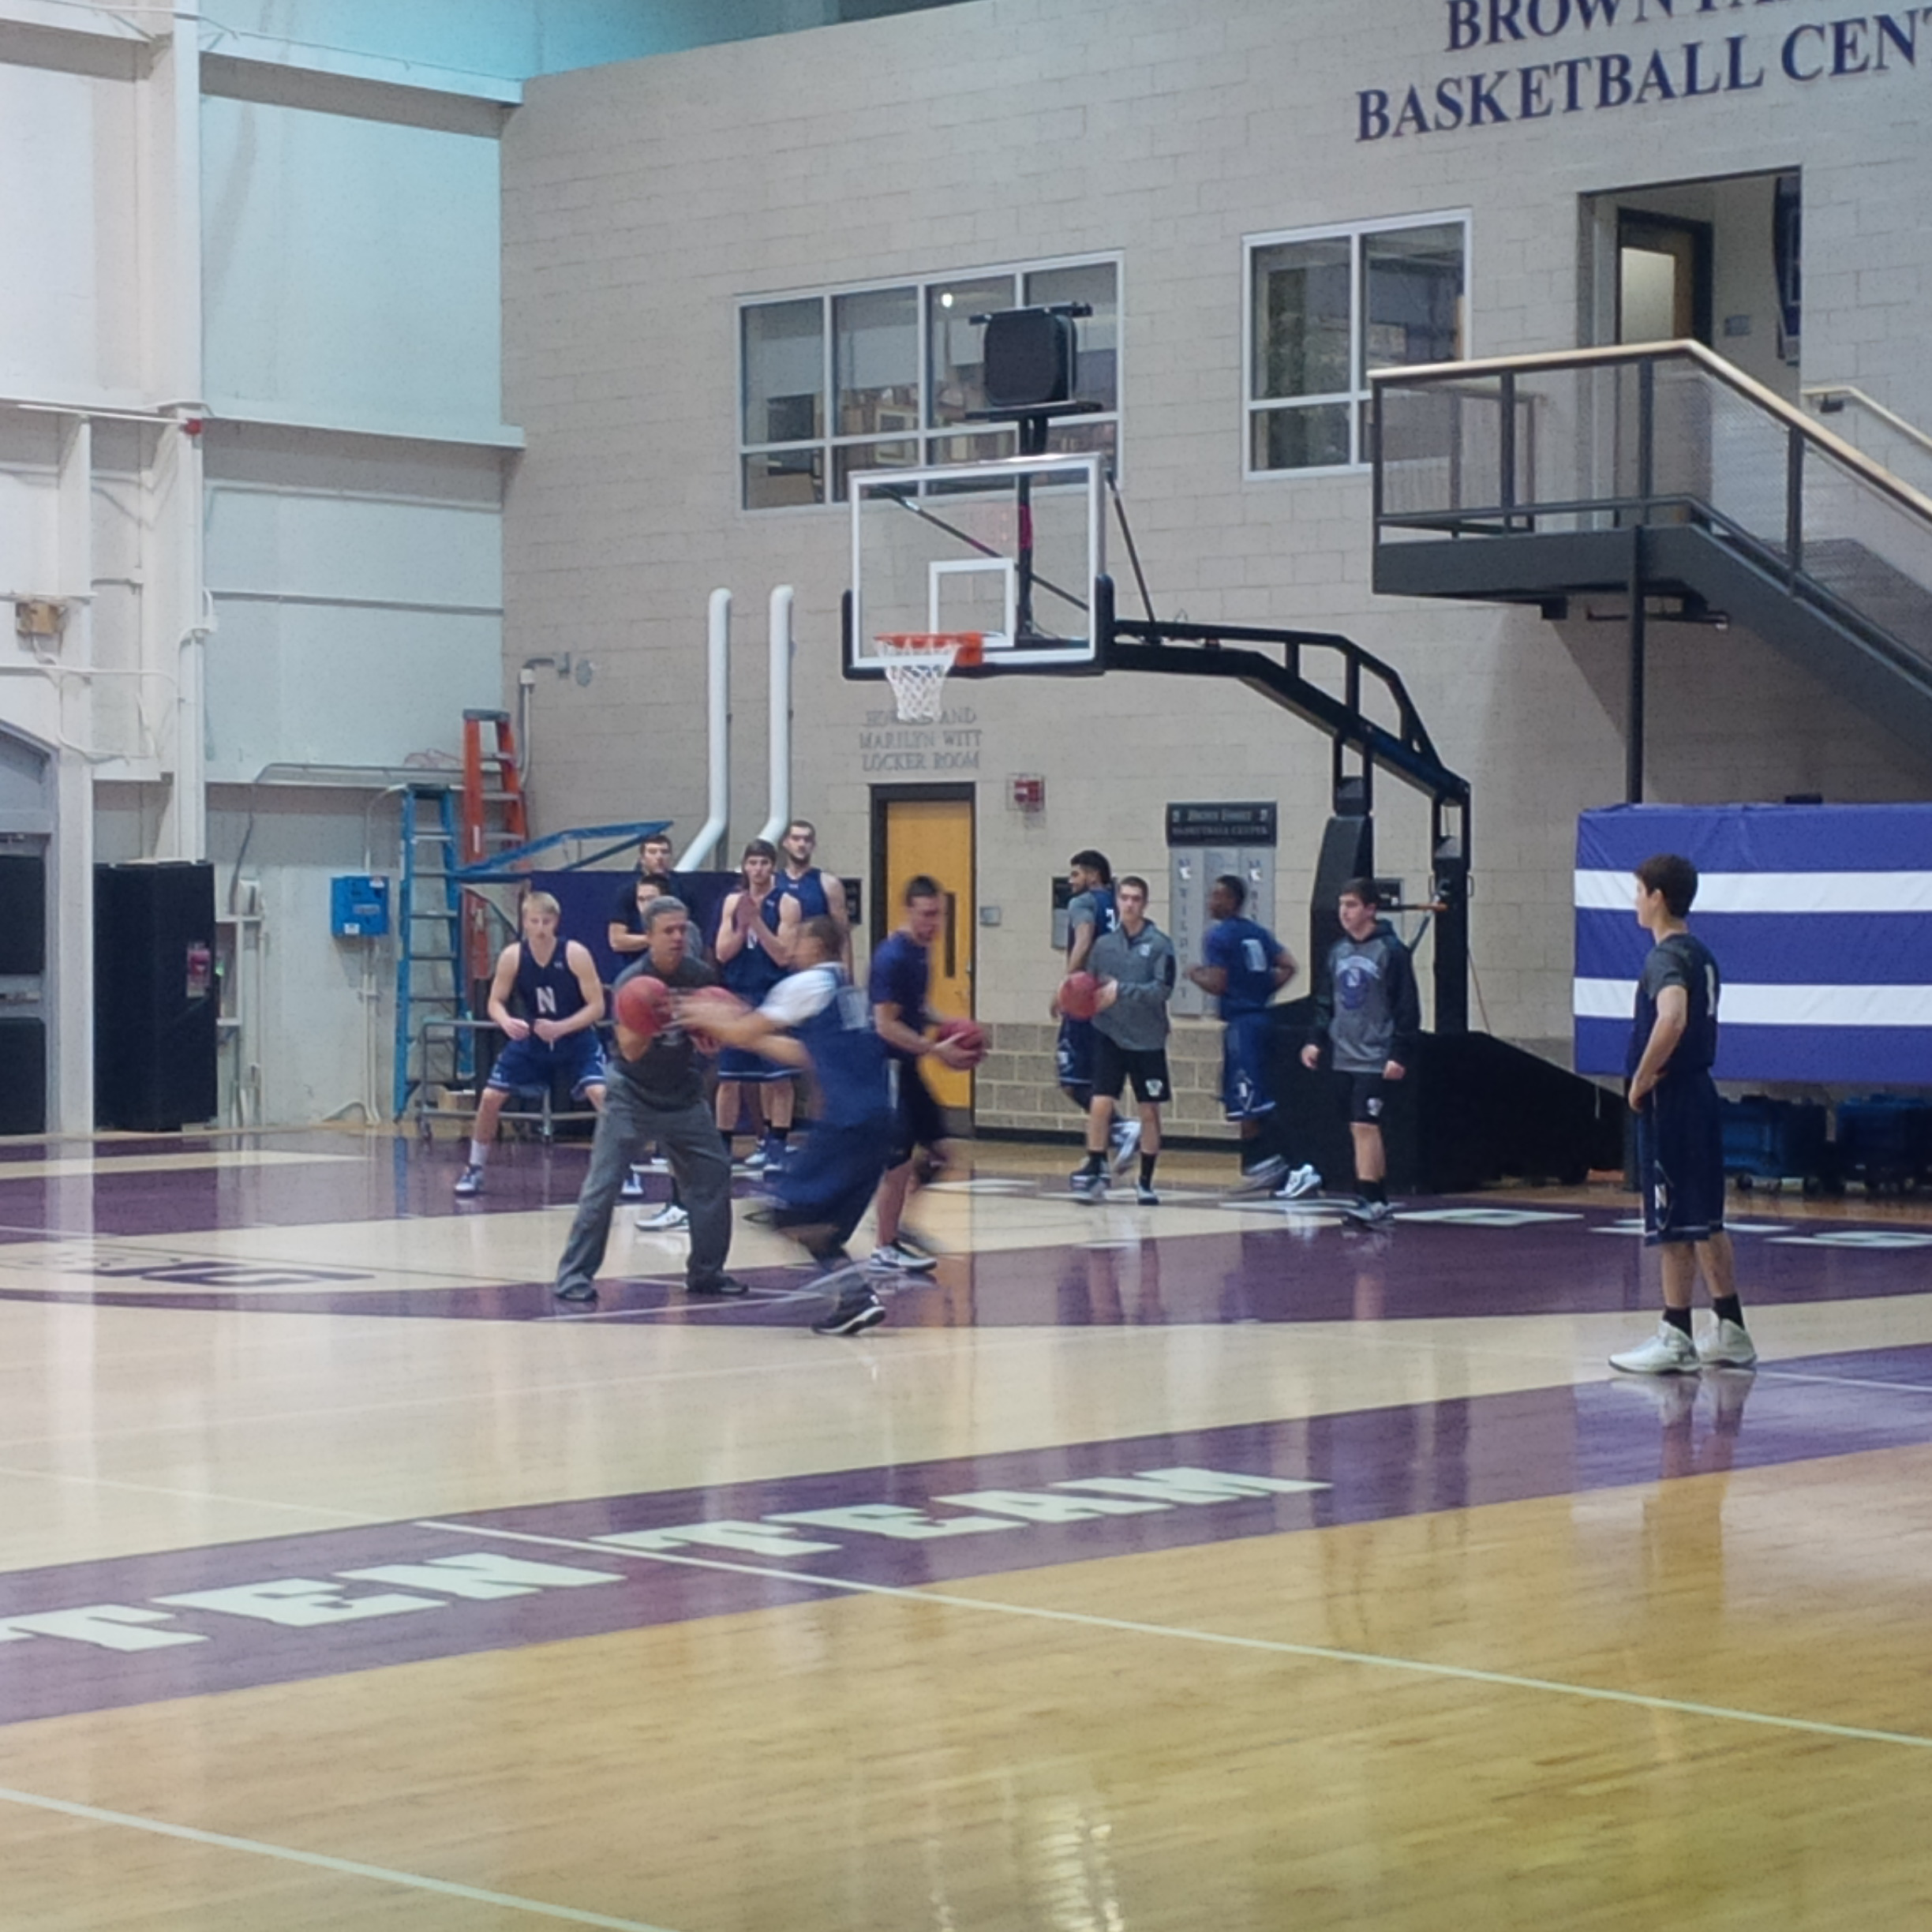 The Northwestern Wildcats basketball team warms up before Wednesday's practice.